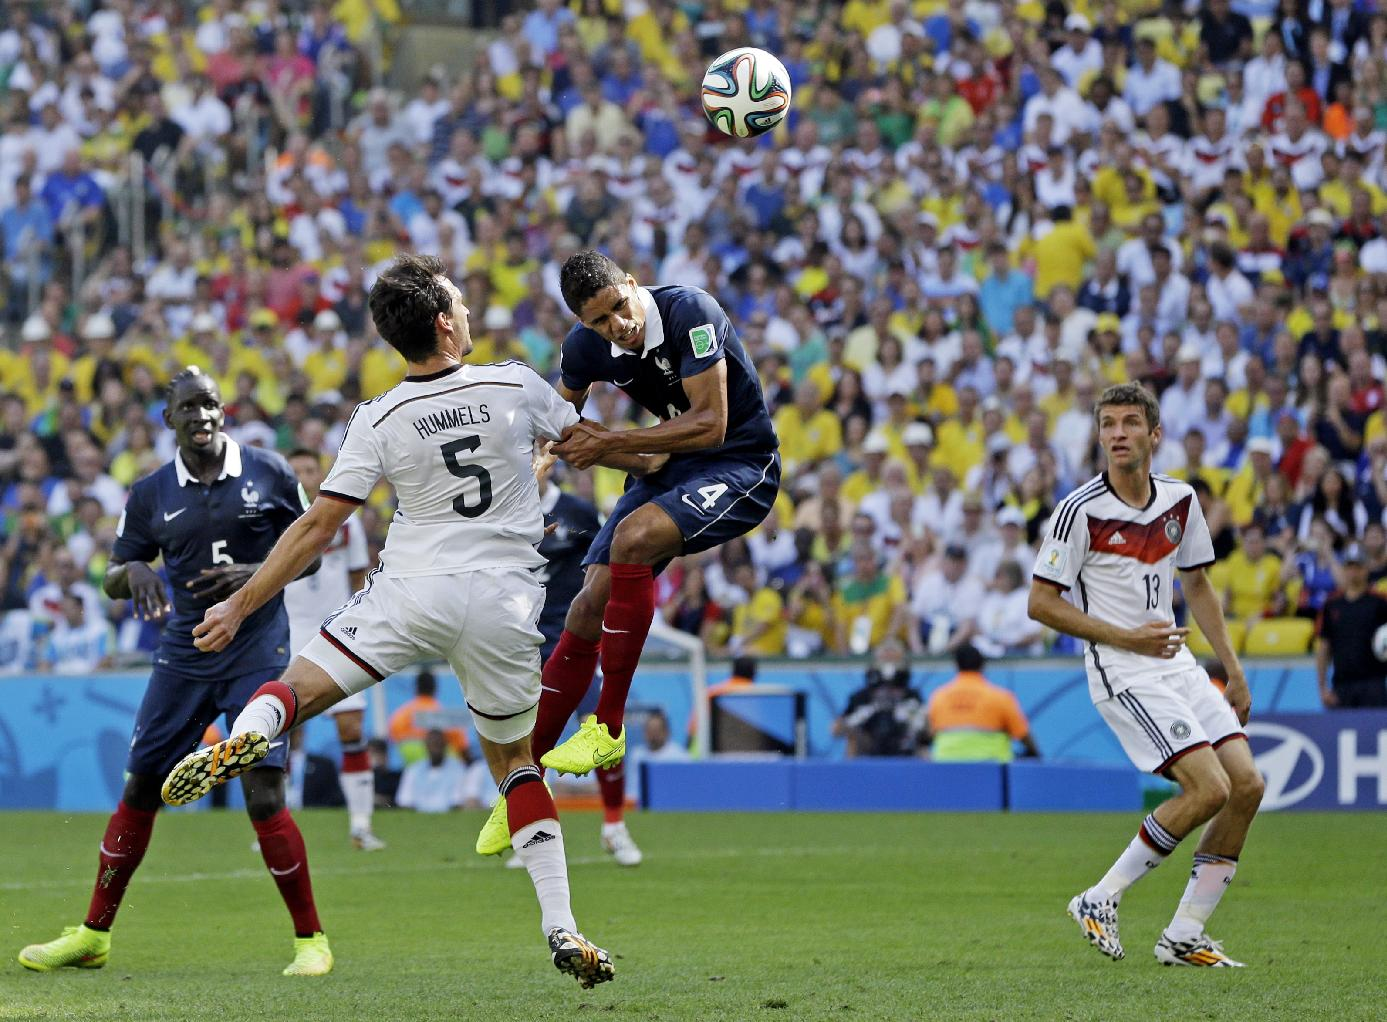 Germany's Mats Hummels heads the ball past France's Raphael Varane to score his side's first goal during the World Cup quarterfinal soccer match at the Maracana Stadium in Rio de Janeiro, Brazil, Friday, July 4, 2014